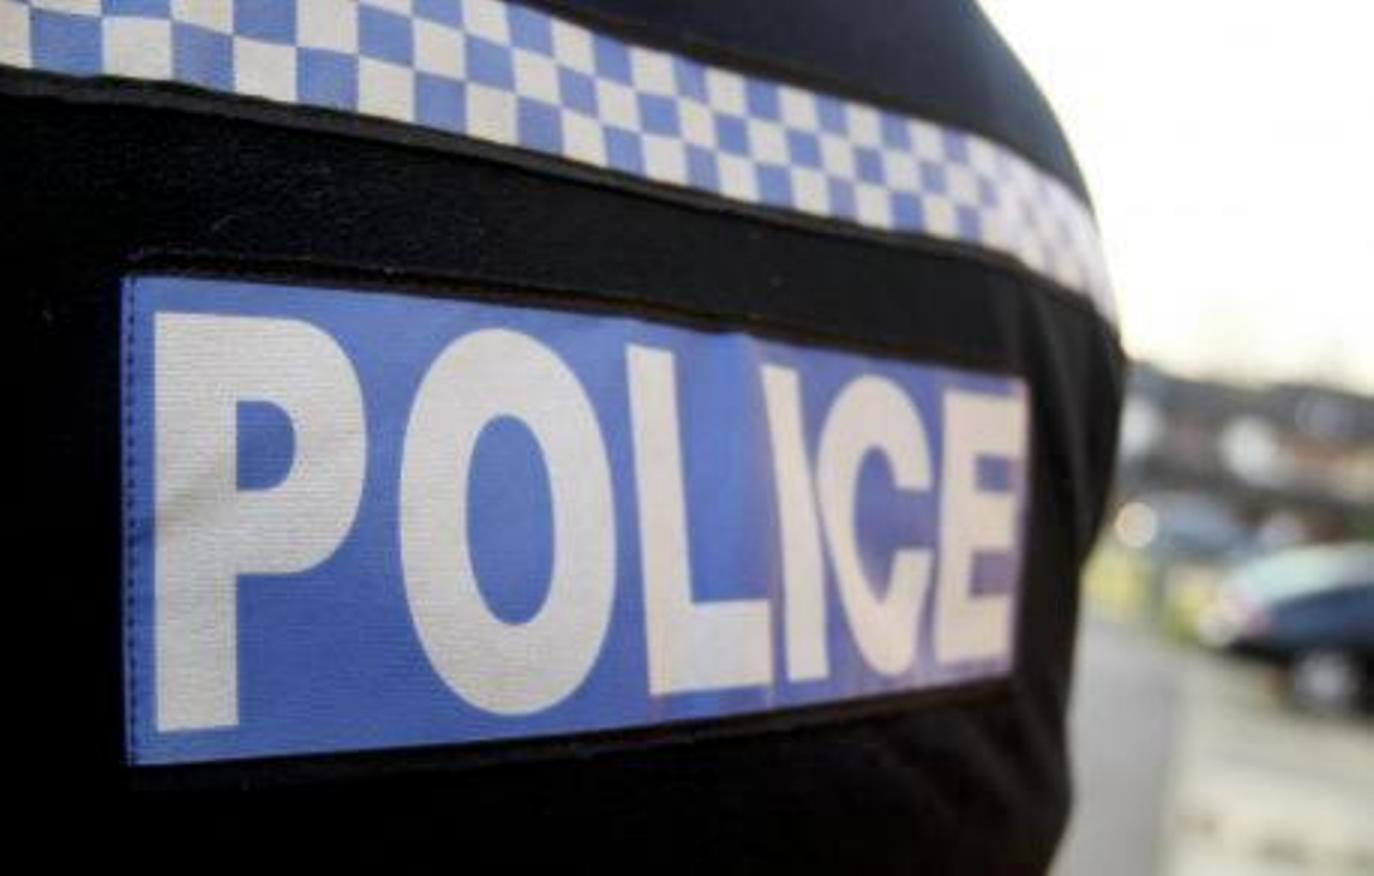 Essex Police closed the station as part of £2.5million cuts.